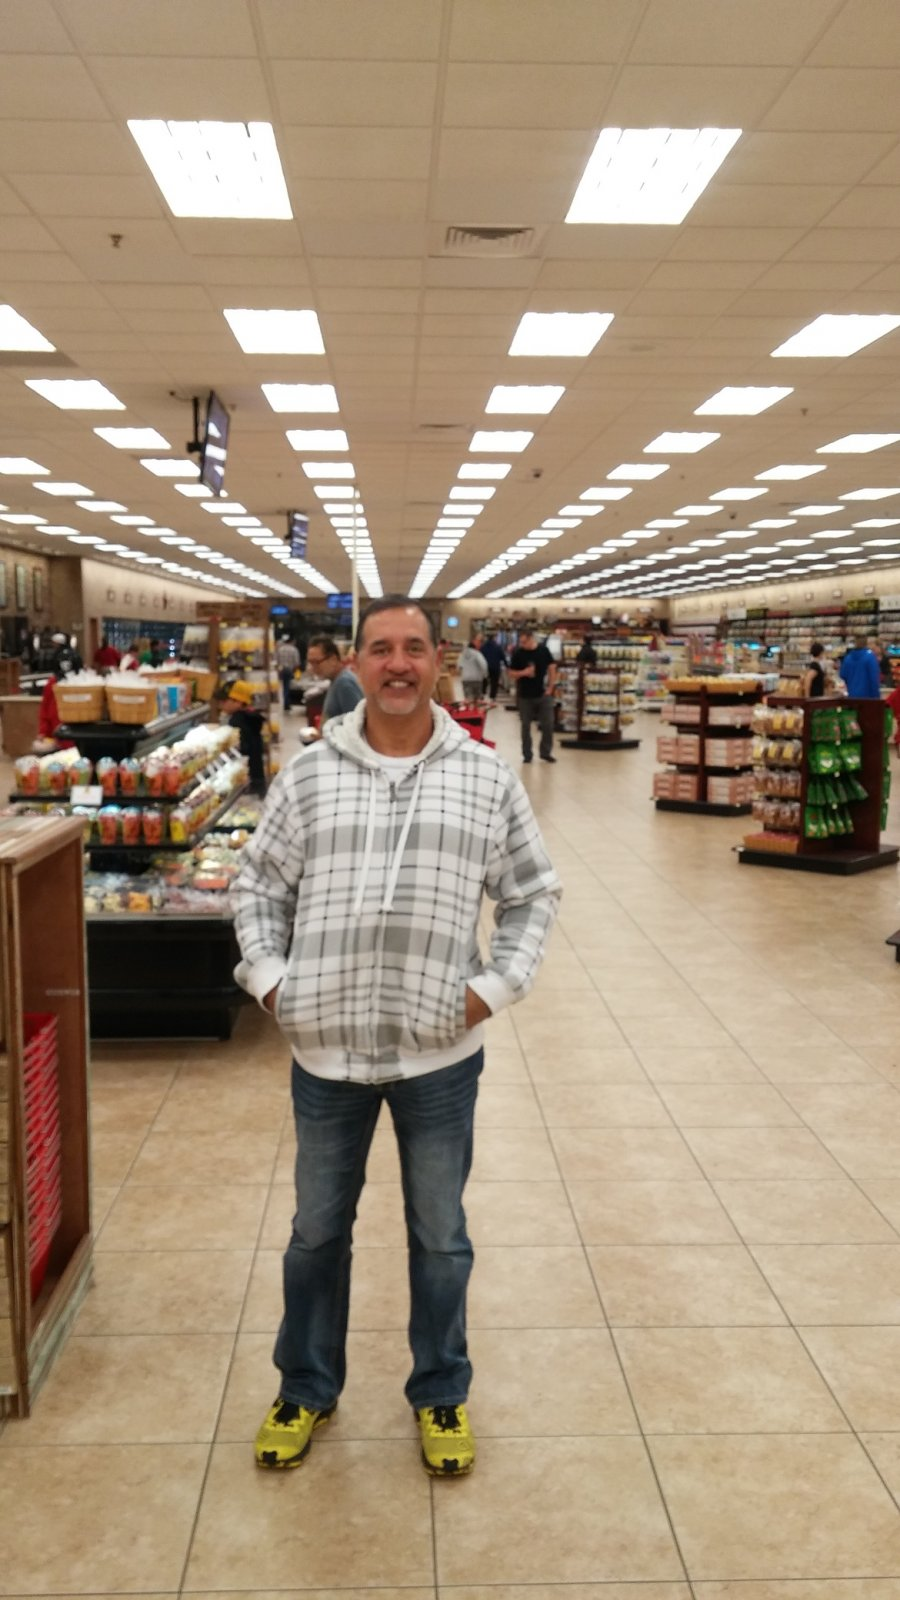 Click image for larger version  Name:BUC-EE's Happy.jpg Views:94 Size:189.3 KB ID:252958